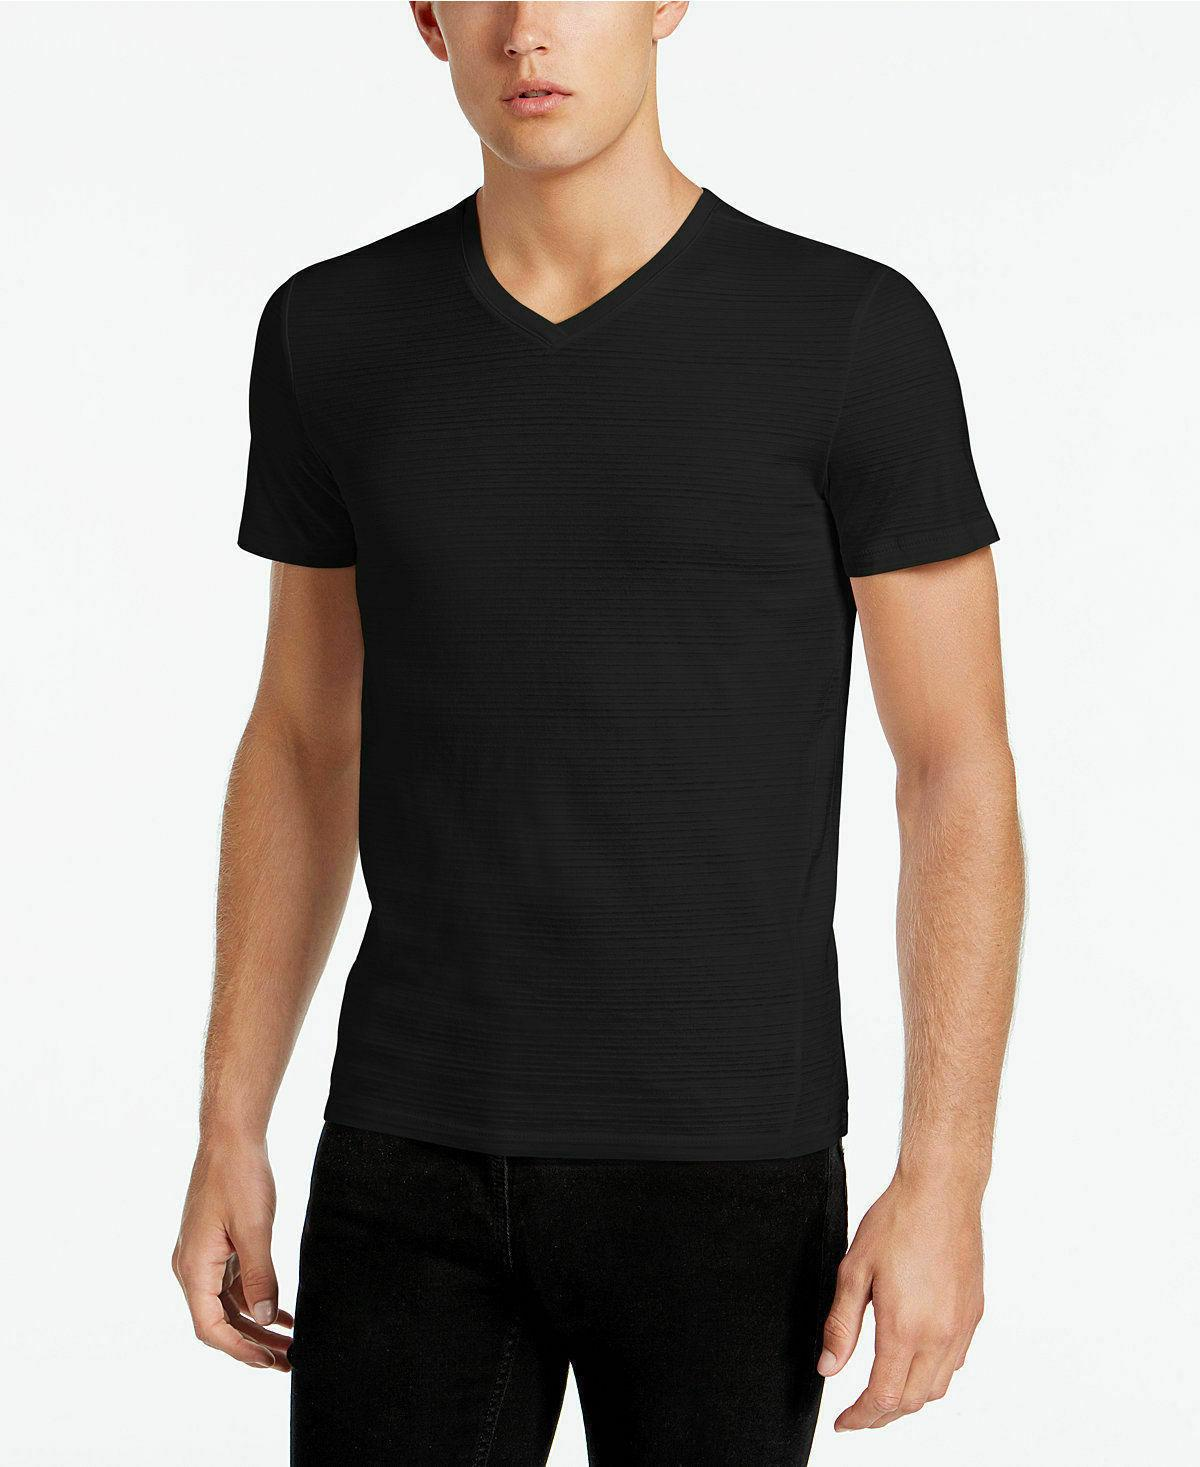 sale men s cotton v neck slub